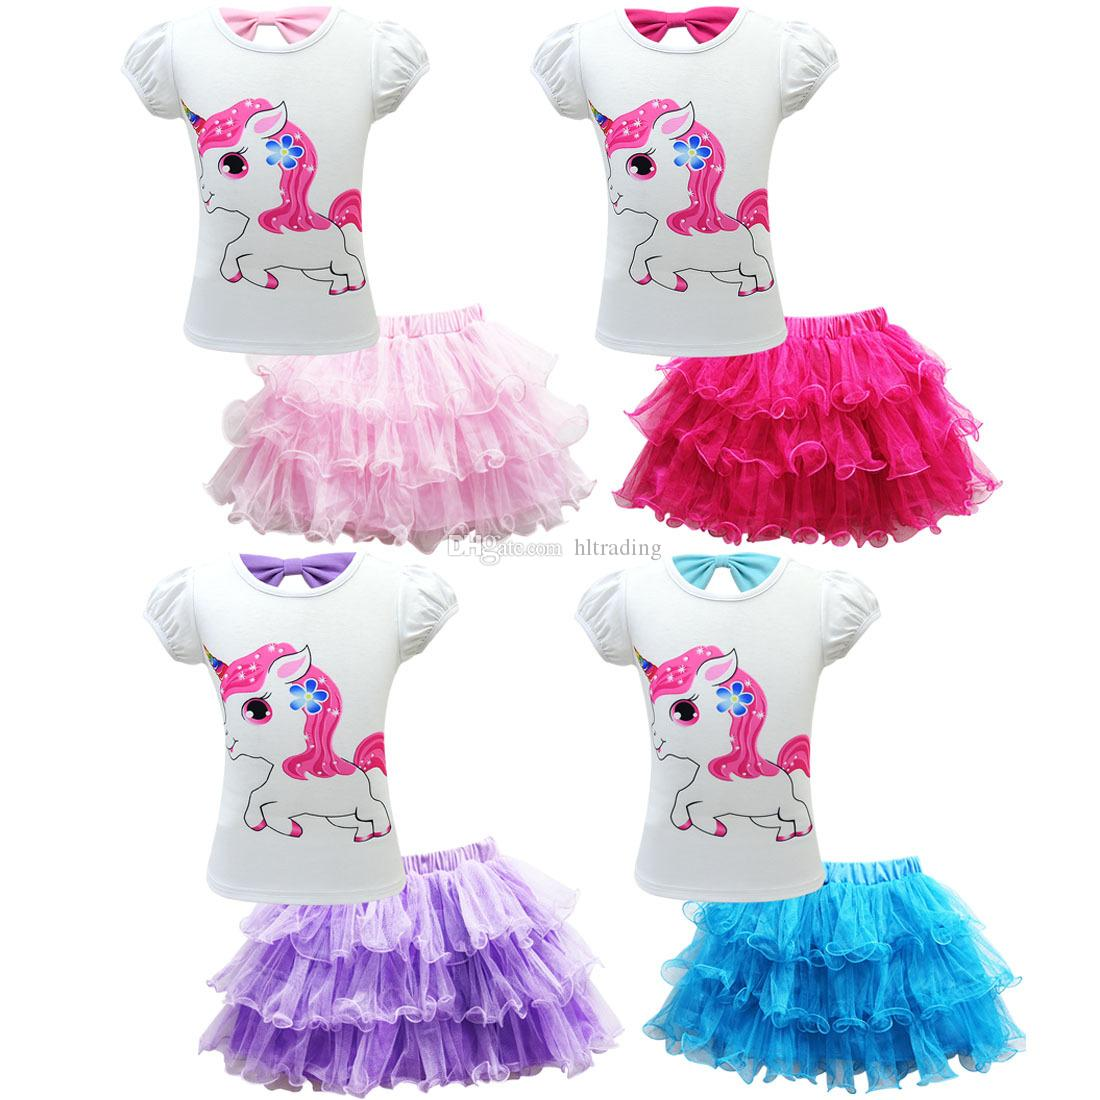 Baby girls outfits children unicorn print top+Tutu lace Mesh skirts 2pcs/set 2019 summer fashion Boutique kids Clothing Sets C6485